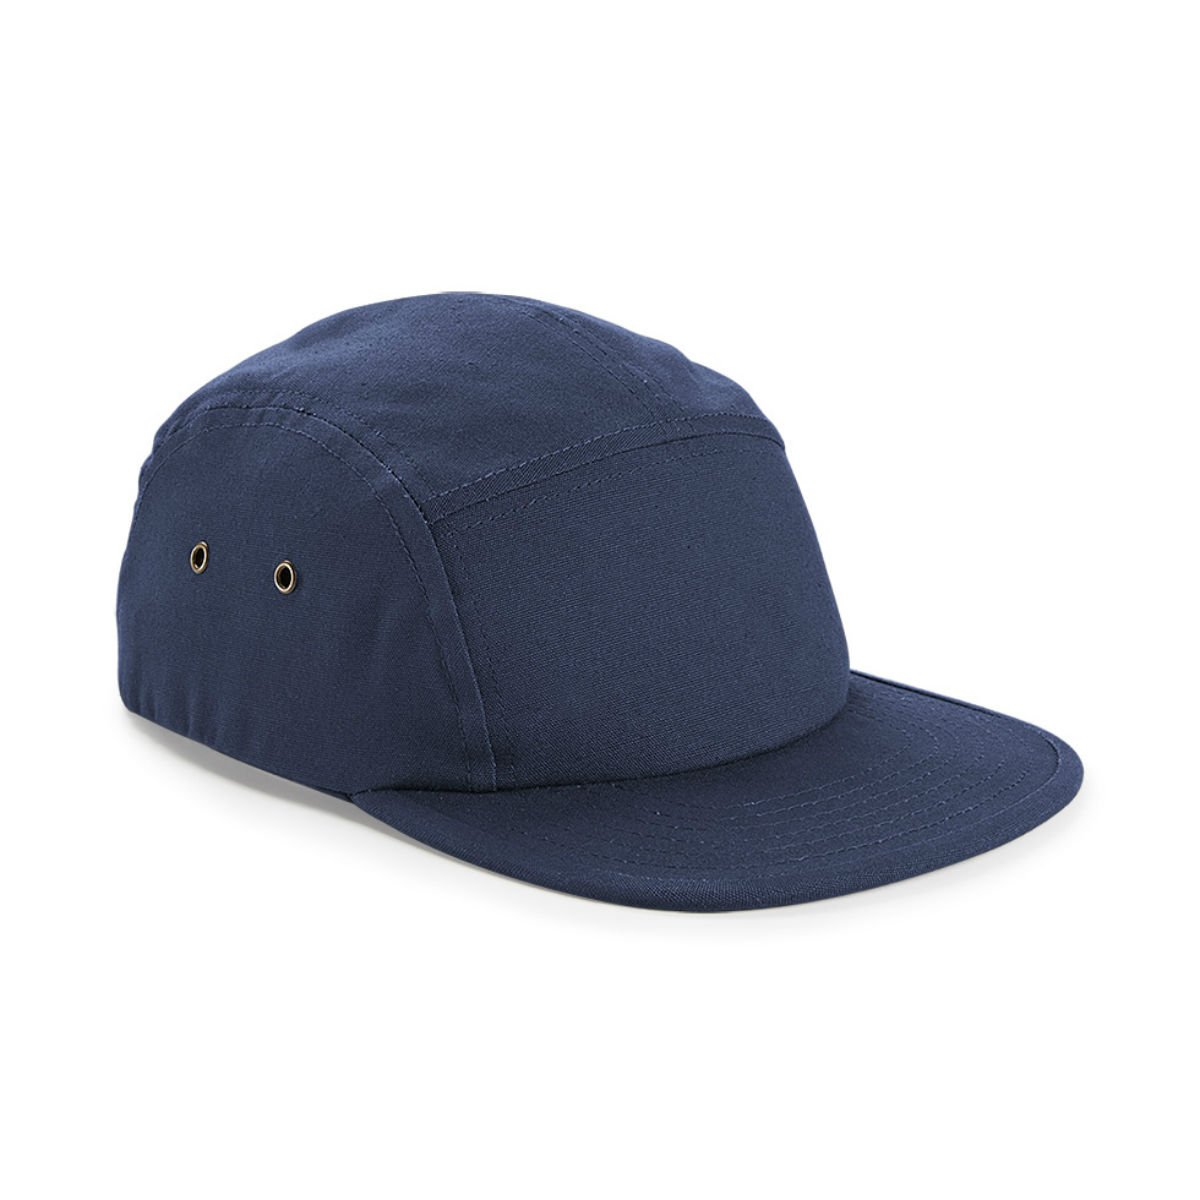 Cotton Canvas 5 Panel Baseball Cap Universal Textiles UTRW2606_1